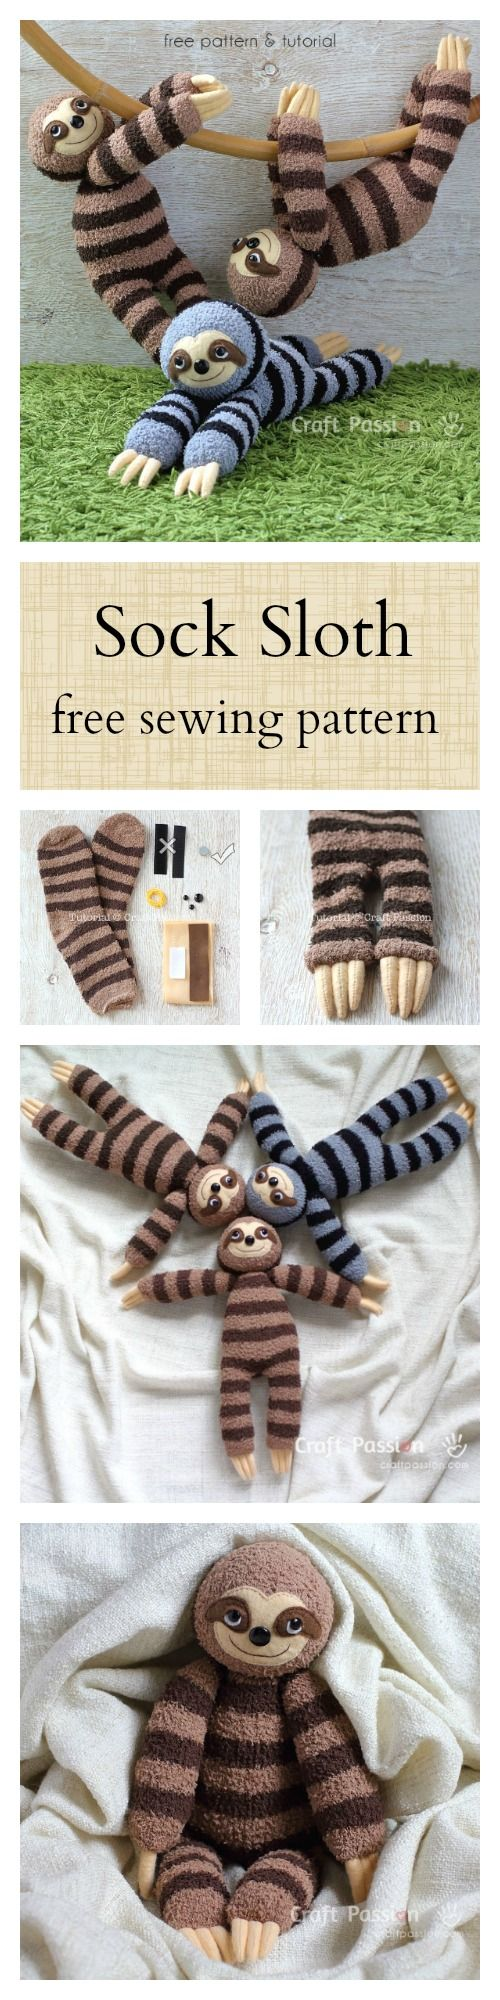 Sock Sloth Plushie - Free Sewing Pattern | Pinterest | Faultier ...